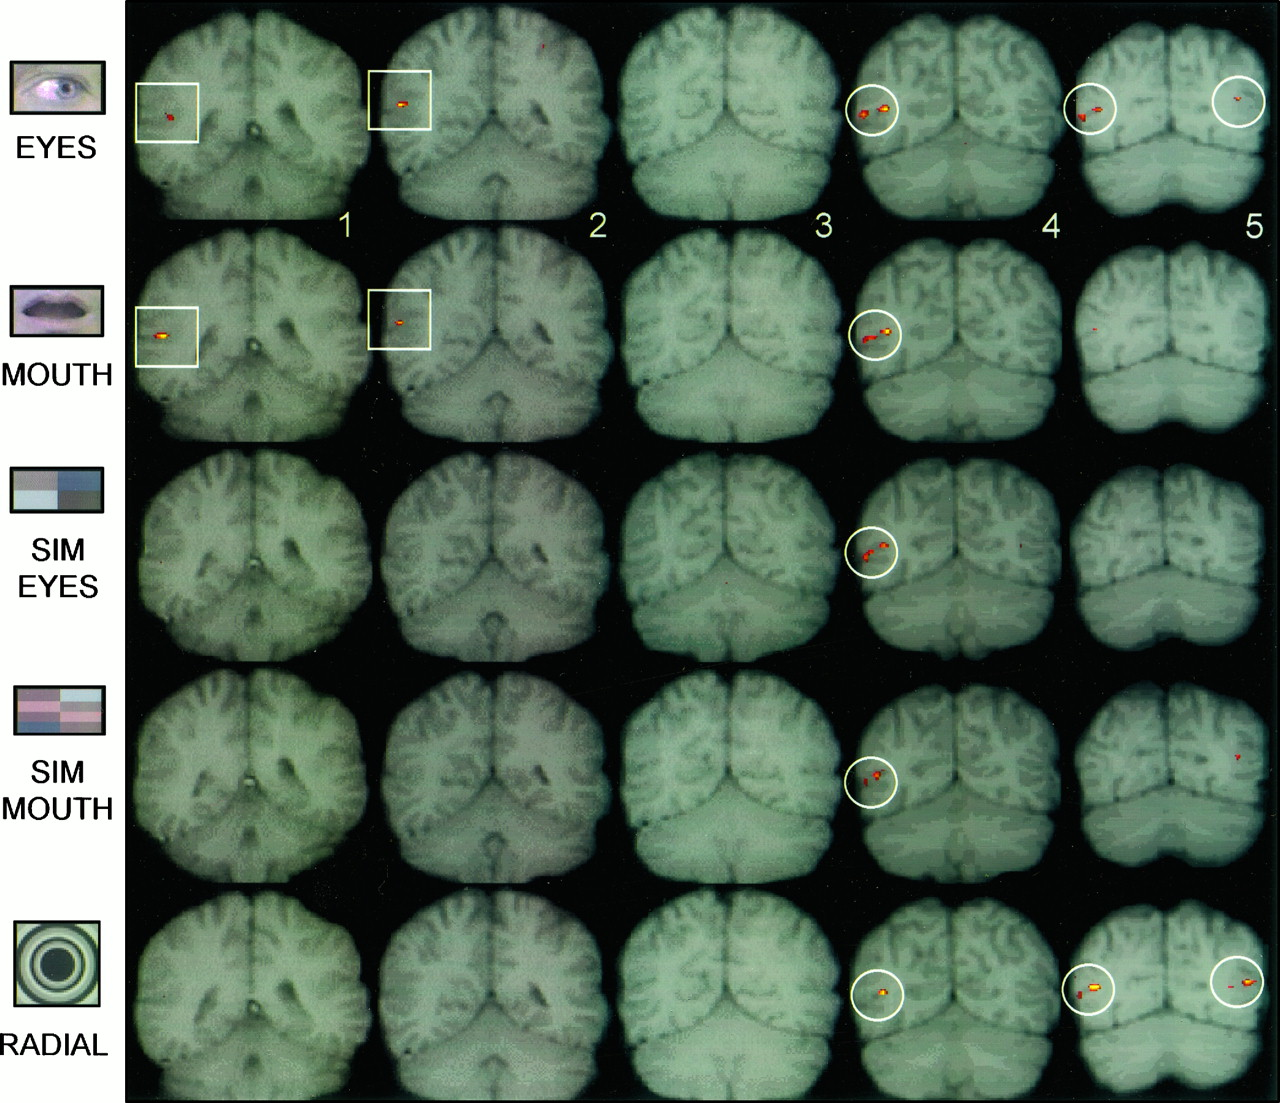 Temporal Cortex Activation in Humans Viewing Eye and Mouth